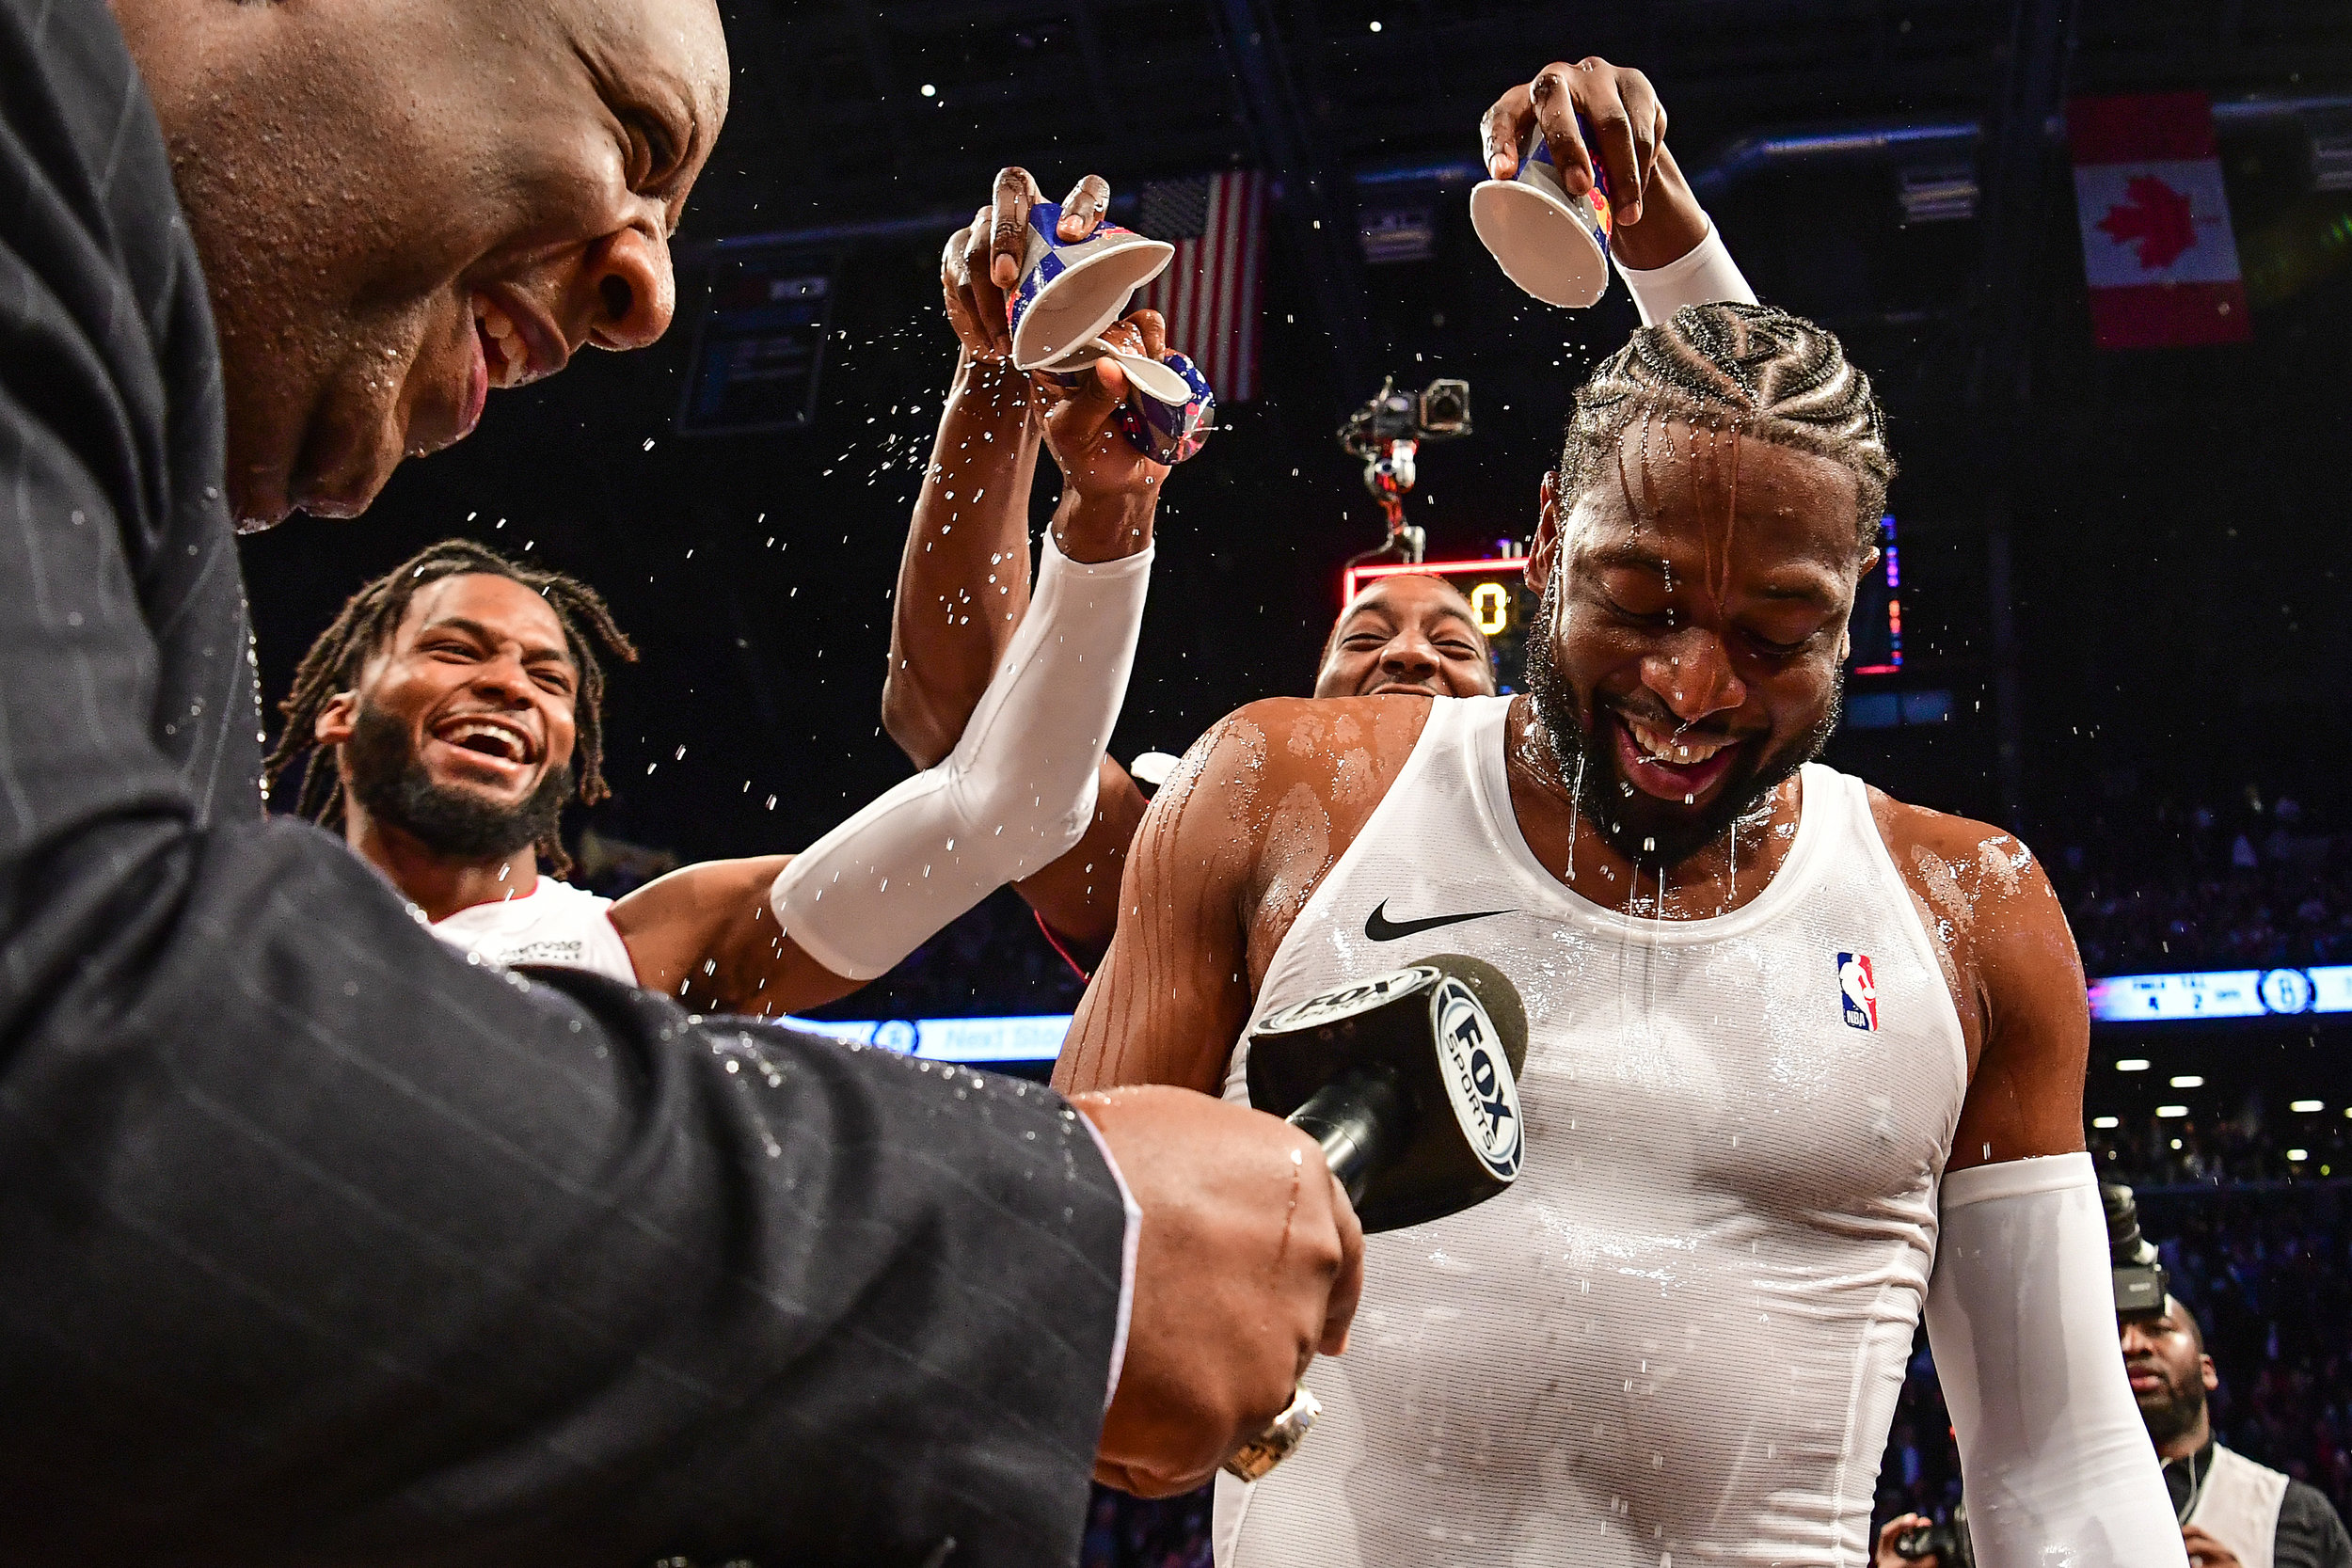 Teammates dump water on Dwyane Wade #3 of the Miami Heat after the game against the Brooklyn Nets at Barclays Center on April 10, 2019 in the Brooklyn borough of New York City. This was Wade's final game before retirement.